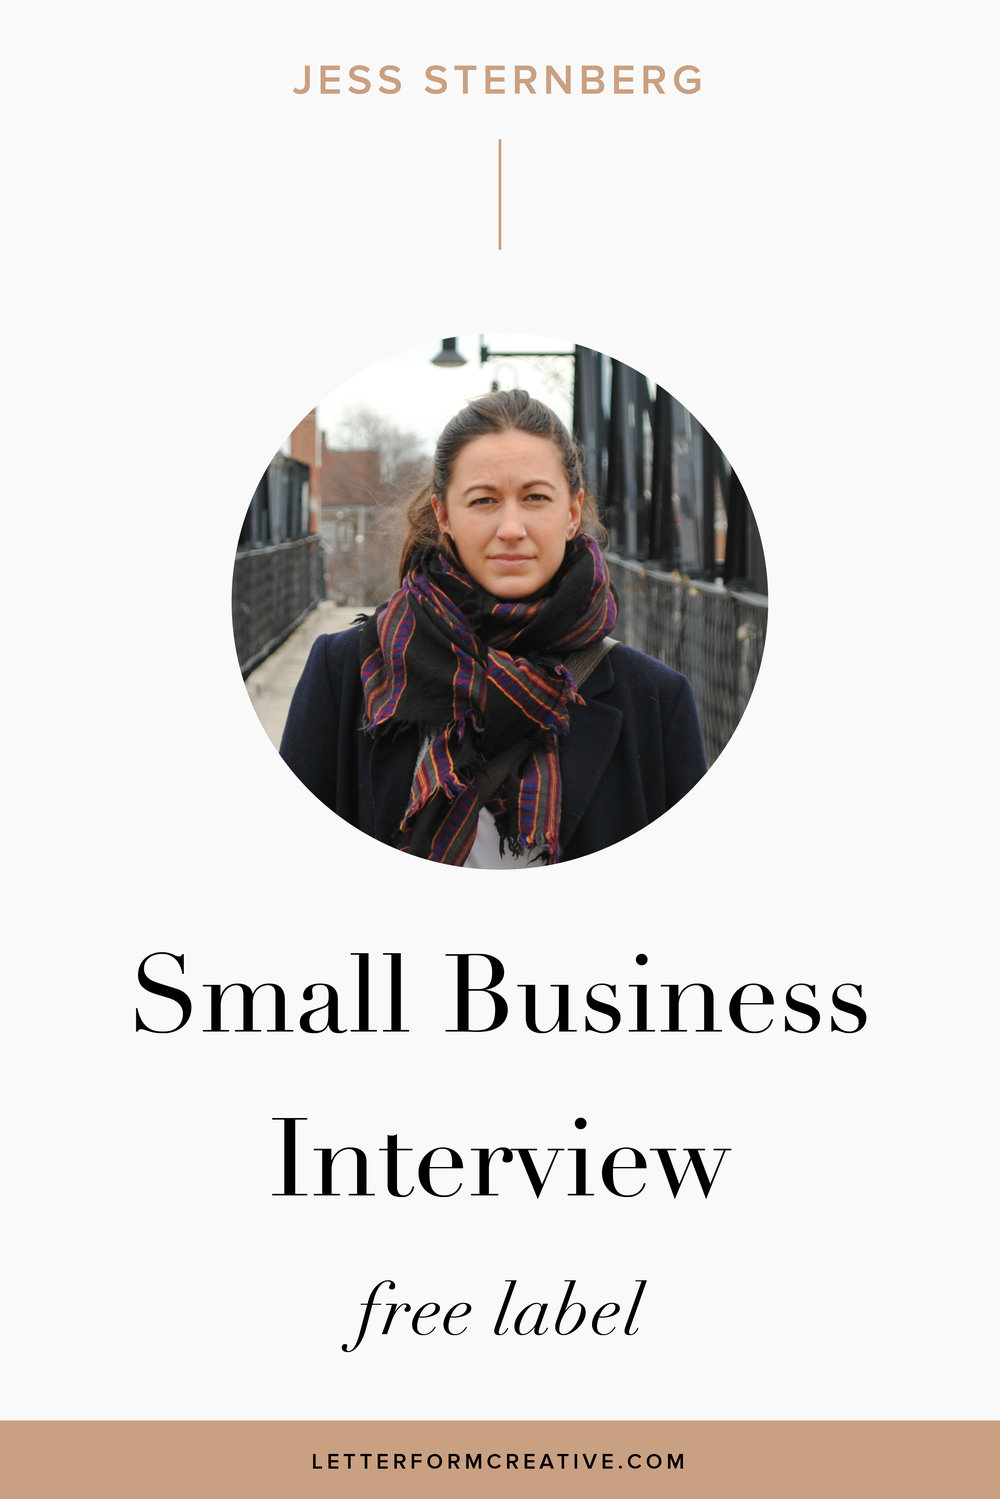 """It just takes time to build the business—slow and steady, baby!"" This is one of many great quotes from my interview with small business owner, Jess Sternberg.  Jess is the owner of Free Label, which produces ethically made clothing. As an entrepreneur she is familiar with the difficulties of running a start up, from the work life balance to the financial responsibility. She knows the value of starting small and making a personal connection with customers. In our interview she talk about INstagram as one of her favorite advertising and marketing tools. Jess encourages anyone who wants to start their own business that it's possible. You just need a lot of passion and motivation! Click throug for more ideas, tips, and inspiration!"